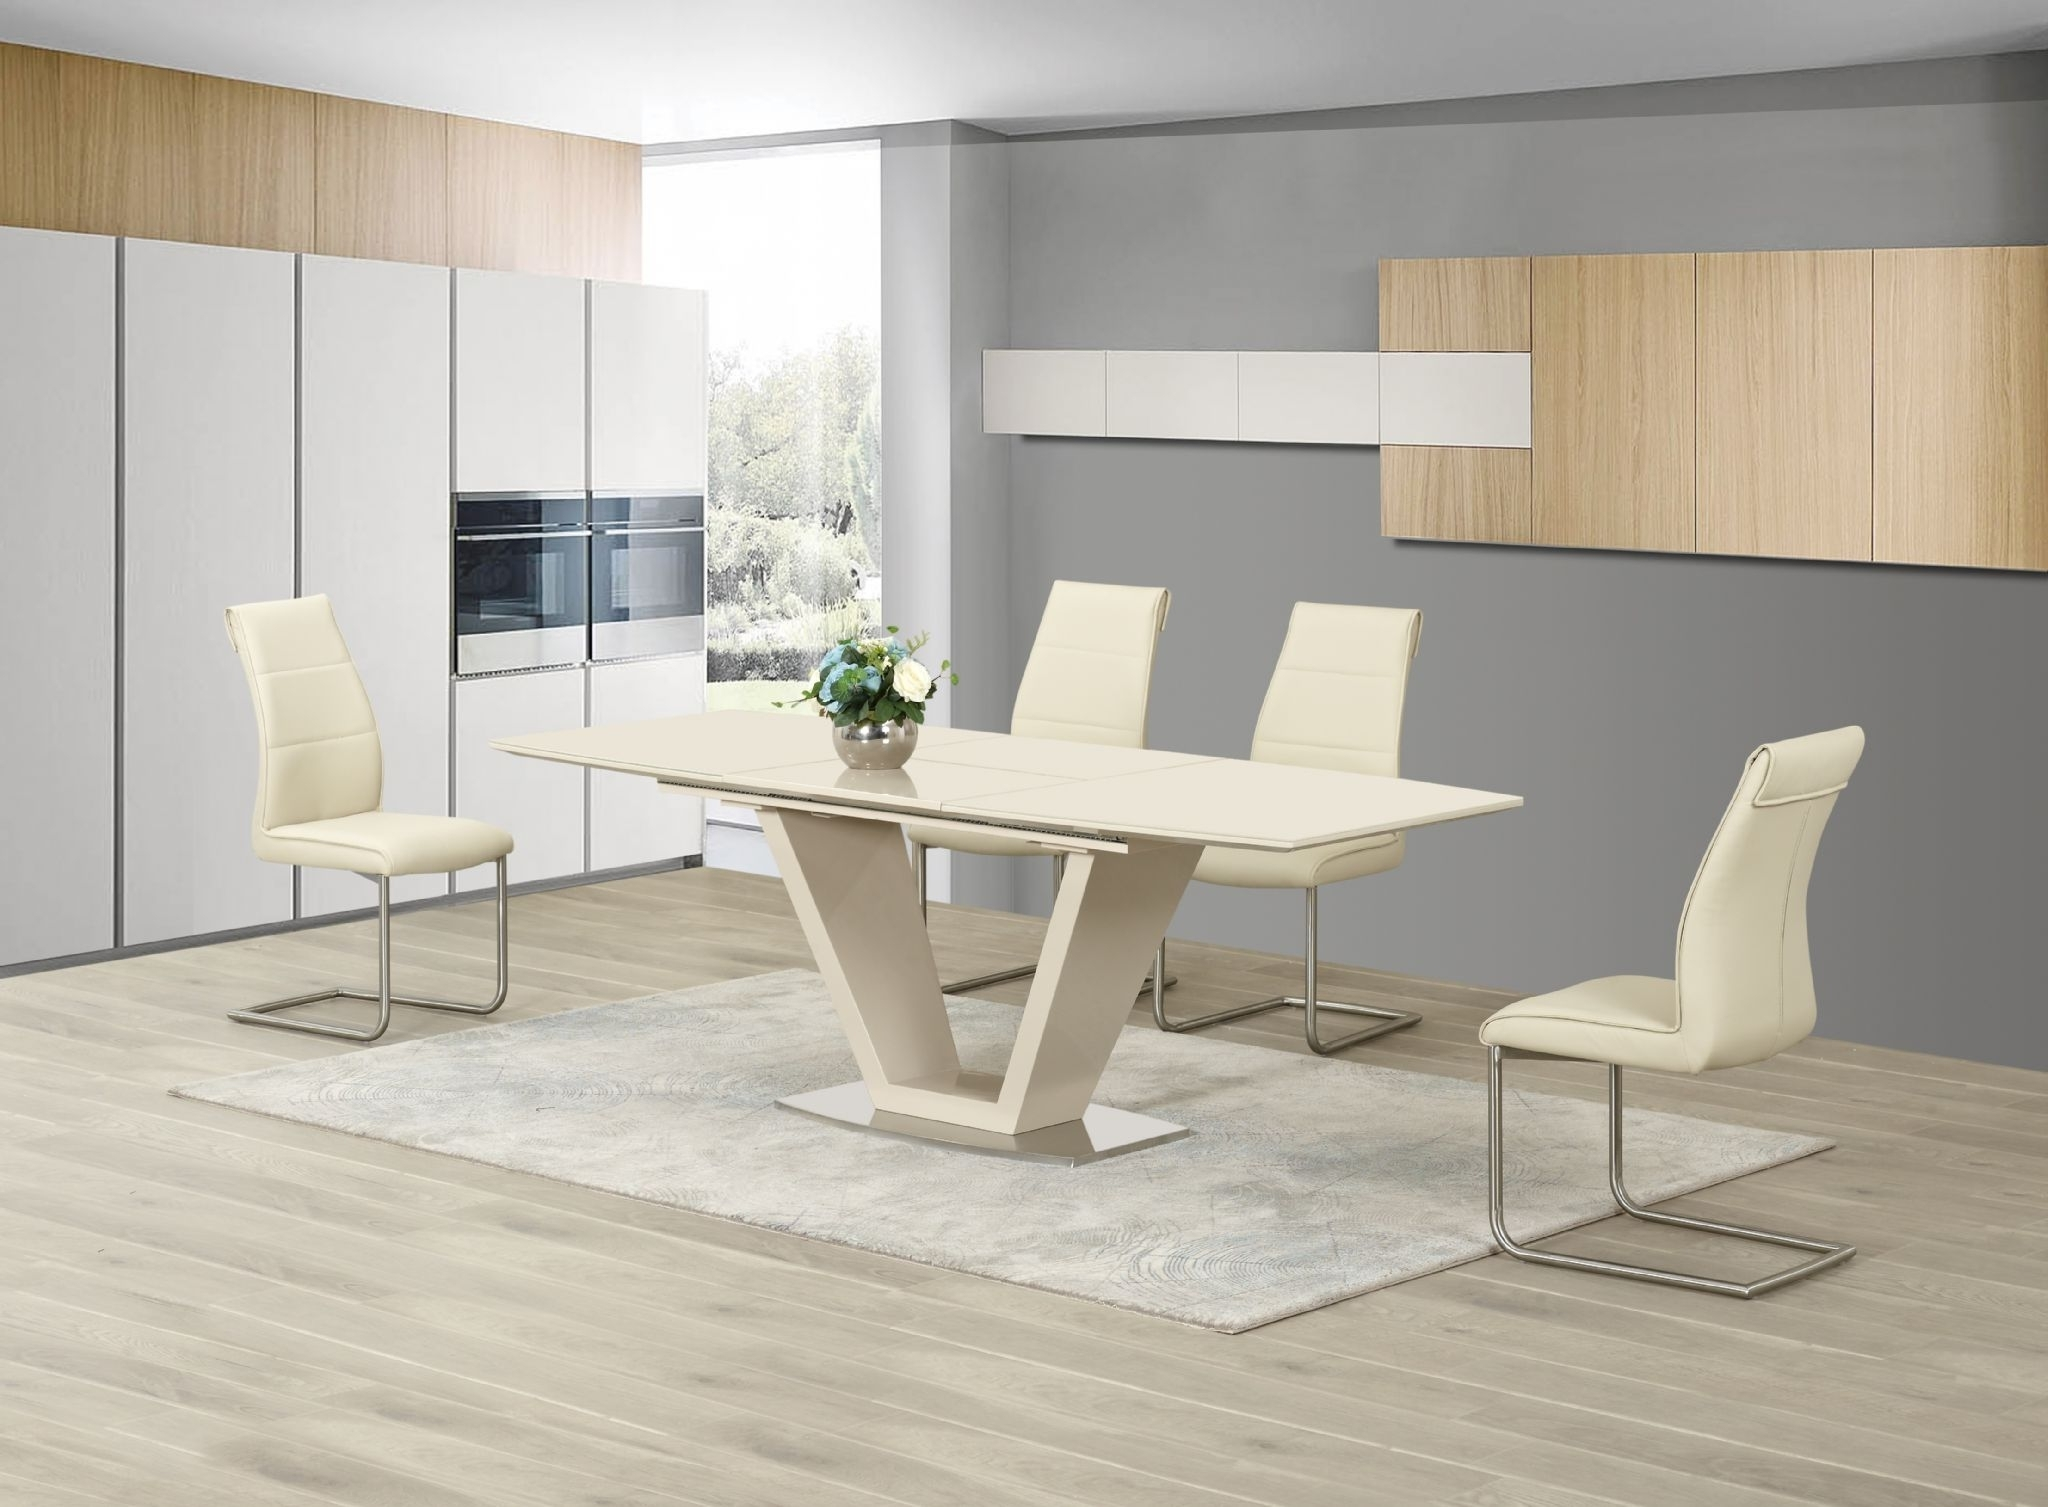 Most Current Extending Dining Tables With 6 Chairs With Ga Loriga Cream Gloss Glass Designer Dining Table Extending 160  (View 20 of 25)